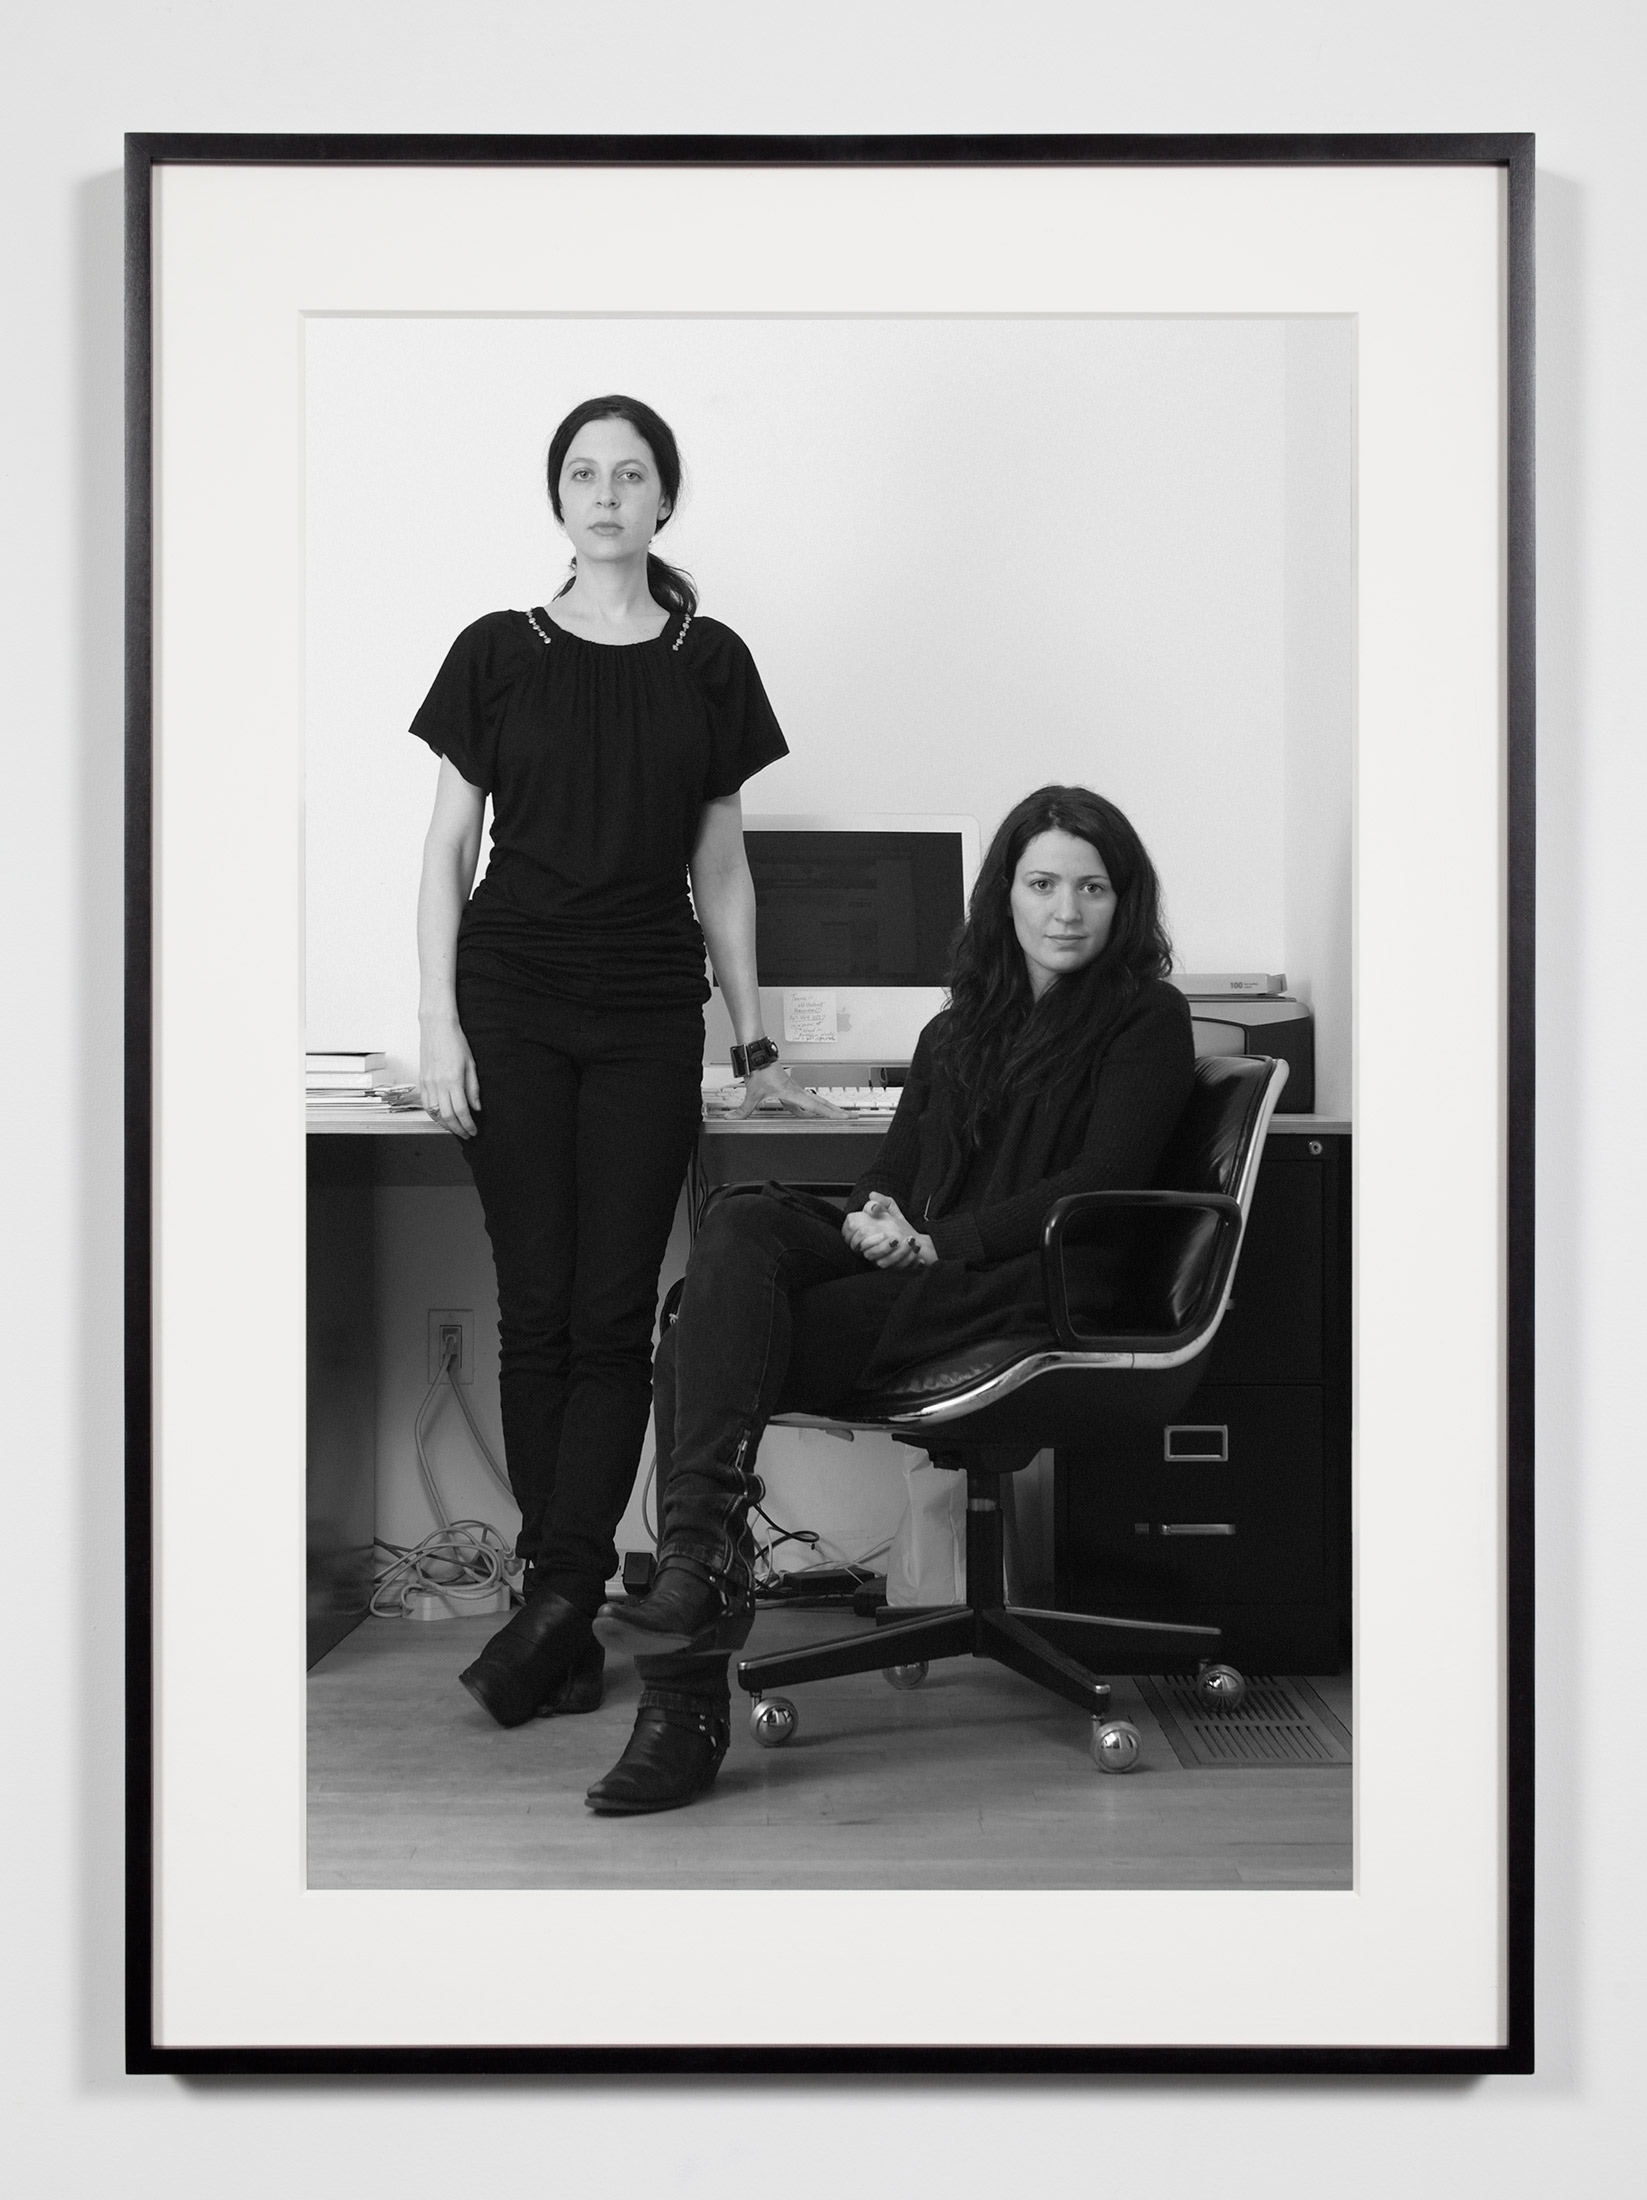 Gallerists (JF/JH), New York, New York, February 19, 2008    2008   Epson Ultrachrome K3 archival ink jet print on Hahnemühle Photo Rag paper  36 3/8 x 26 3/8 inches   Industrial Portraits, 2008–